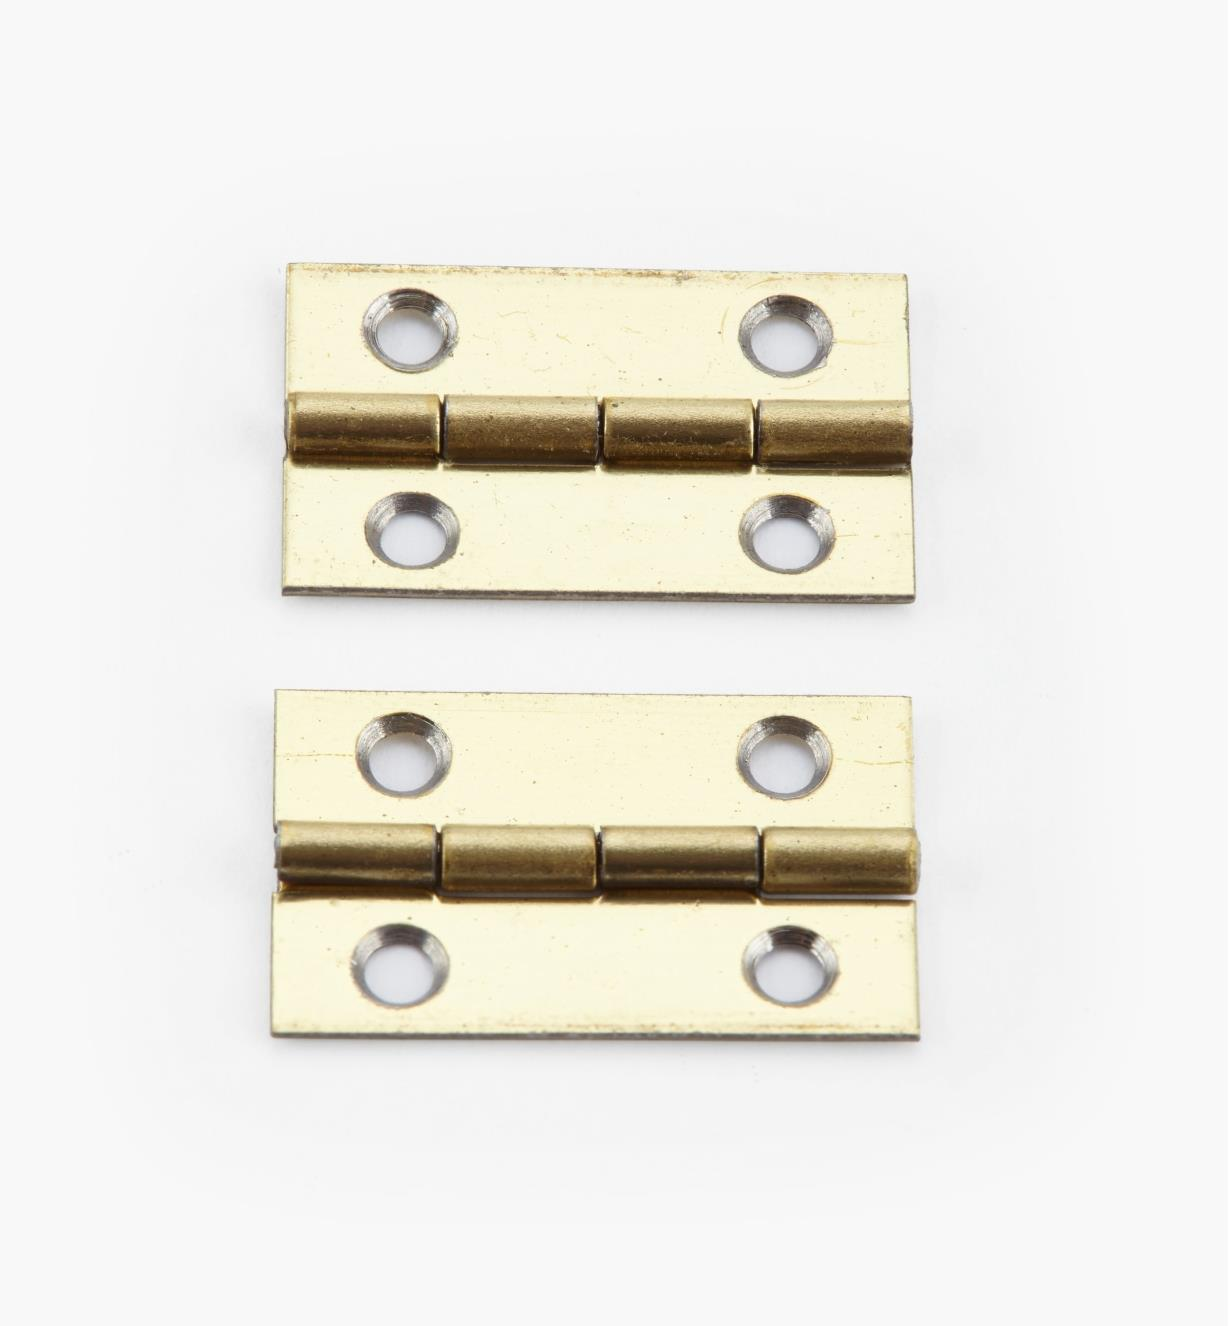 00D3004 - 20mm x 13mm Small Box Hinges, pr.